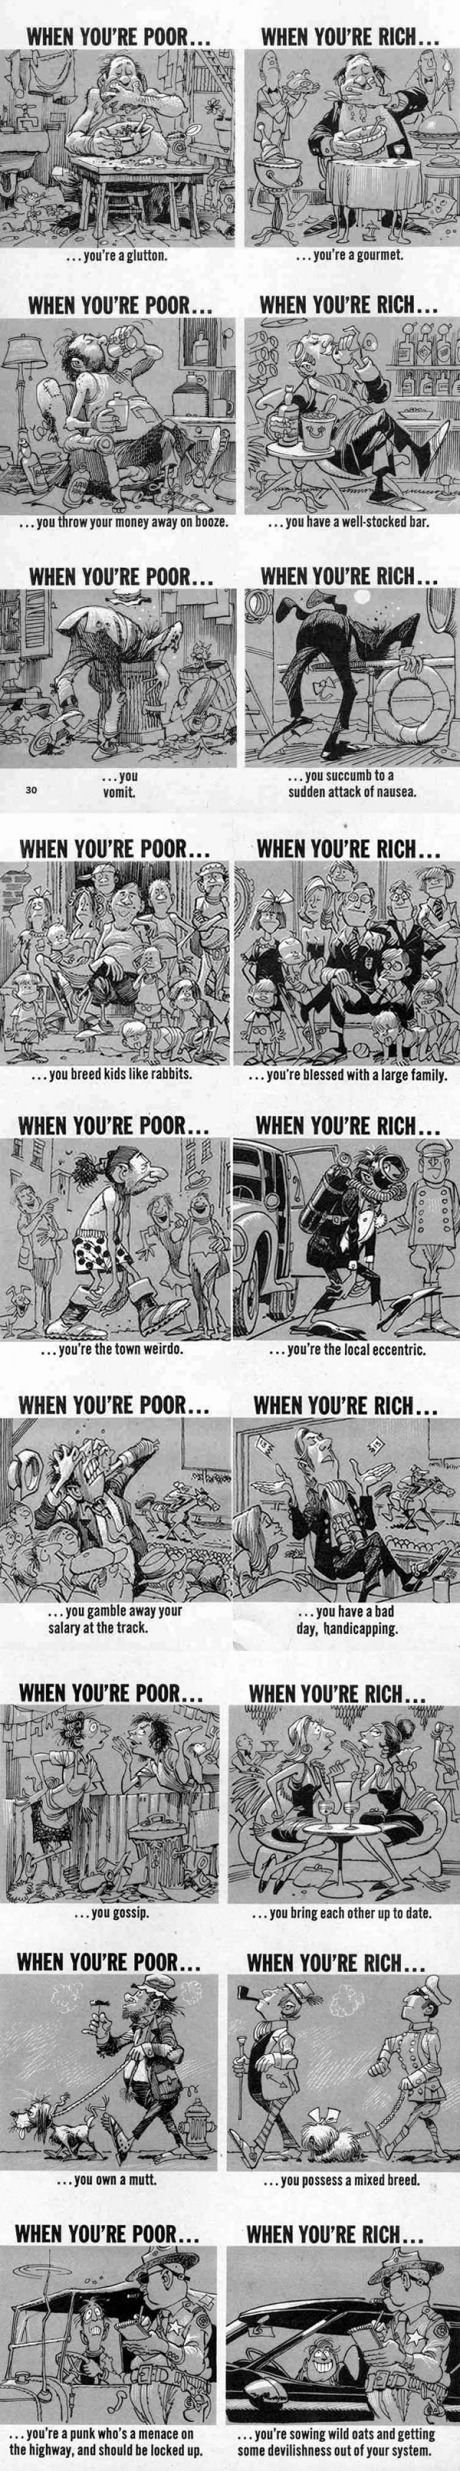 When You're Poor... And... When You're Rich (By Cartoonist Jack Davis)